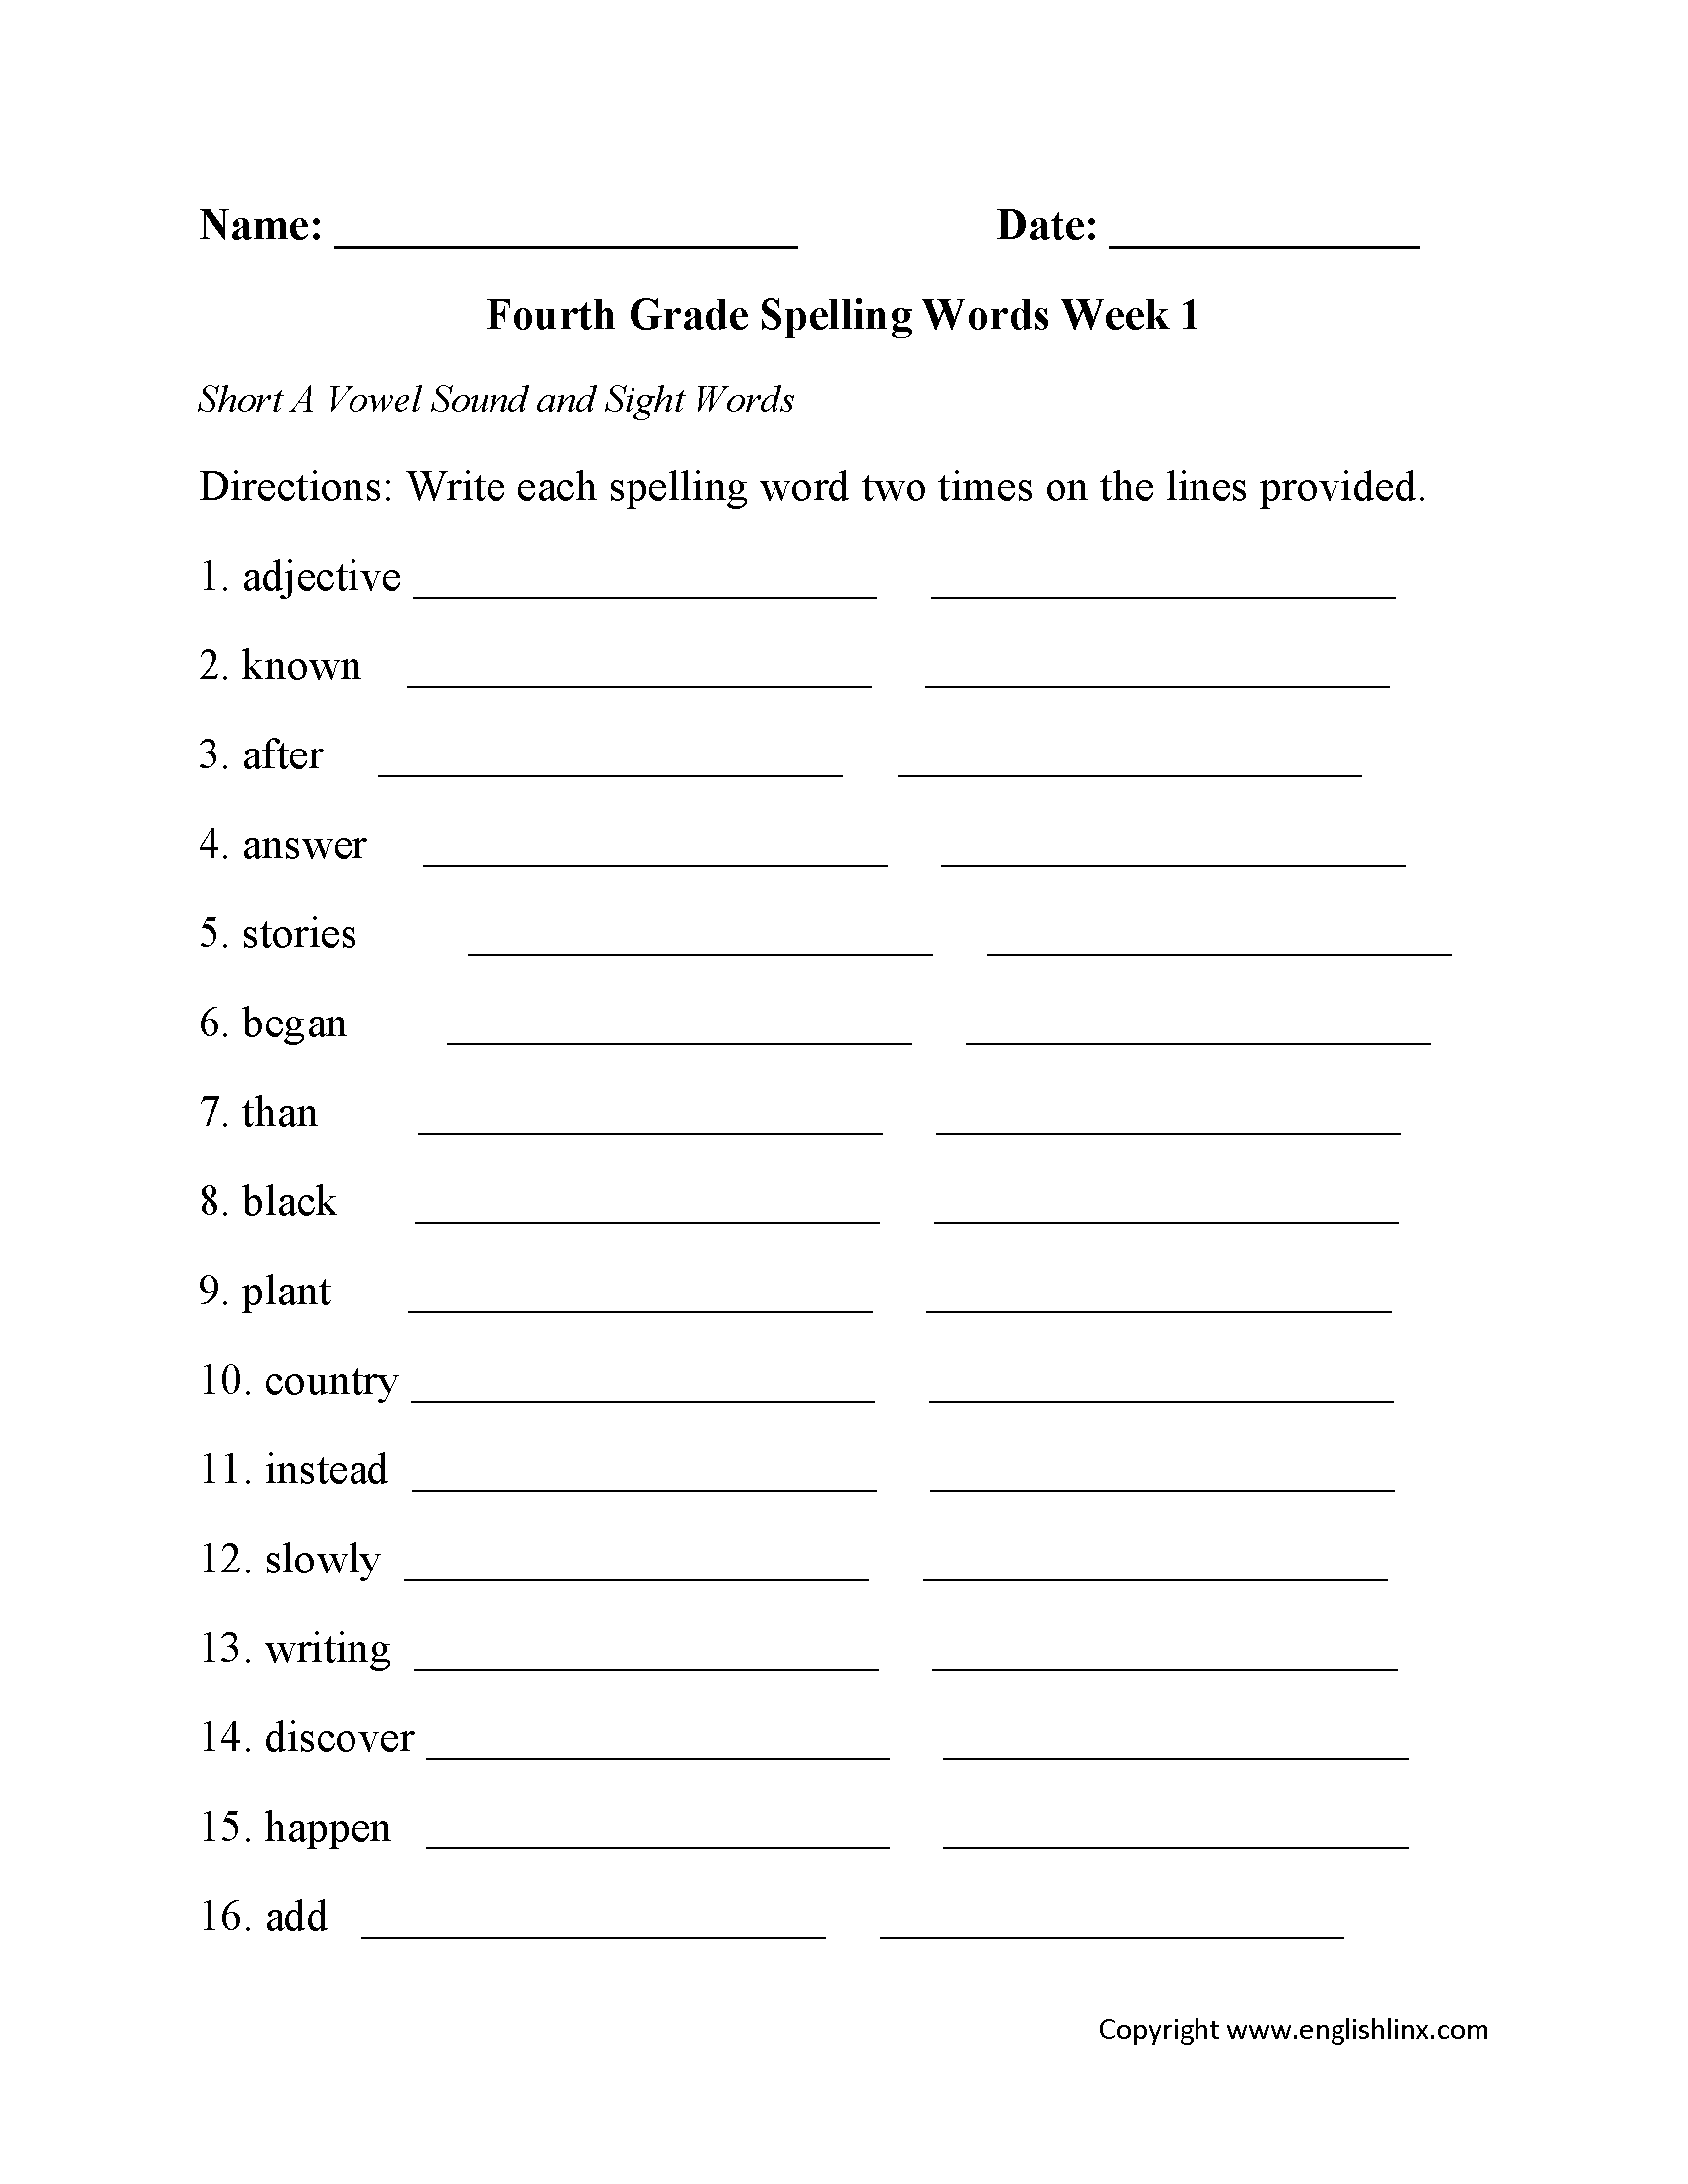 Worksheet 4th Grade Spelling Worksheets spelling worksheets fourth grade worksheets